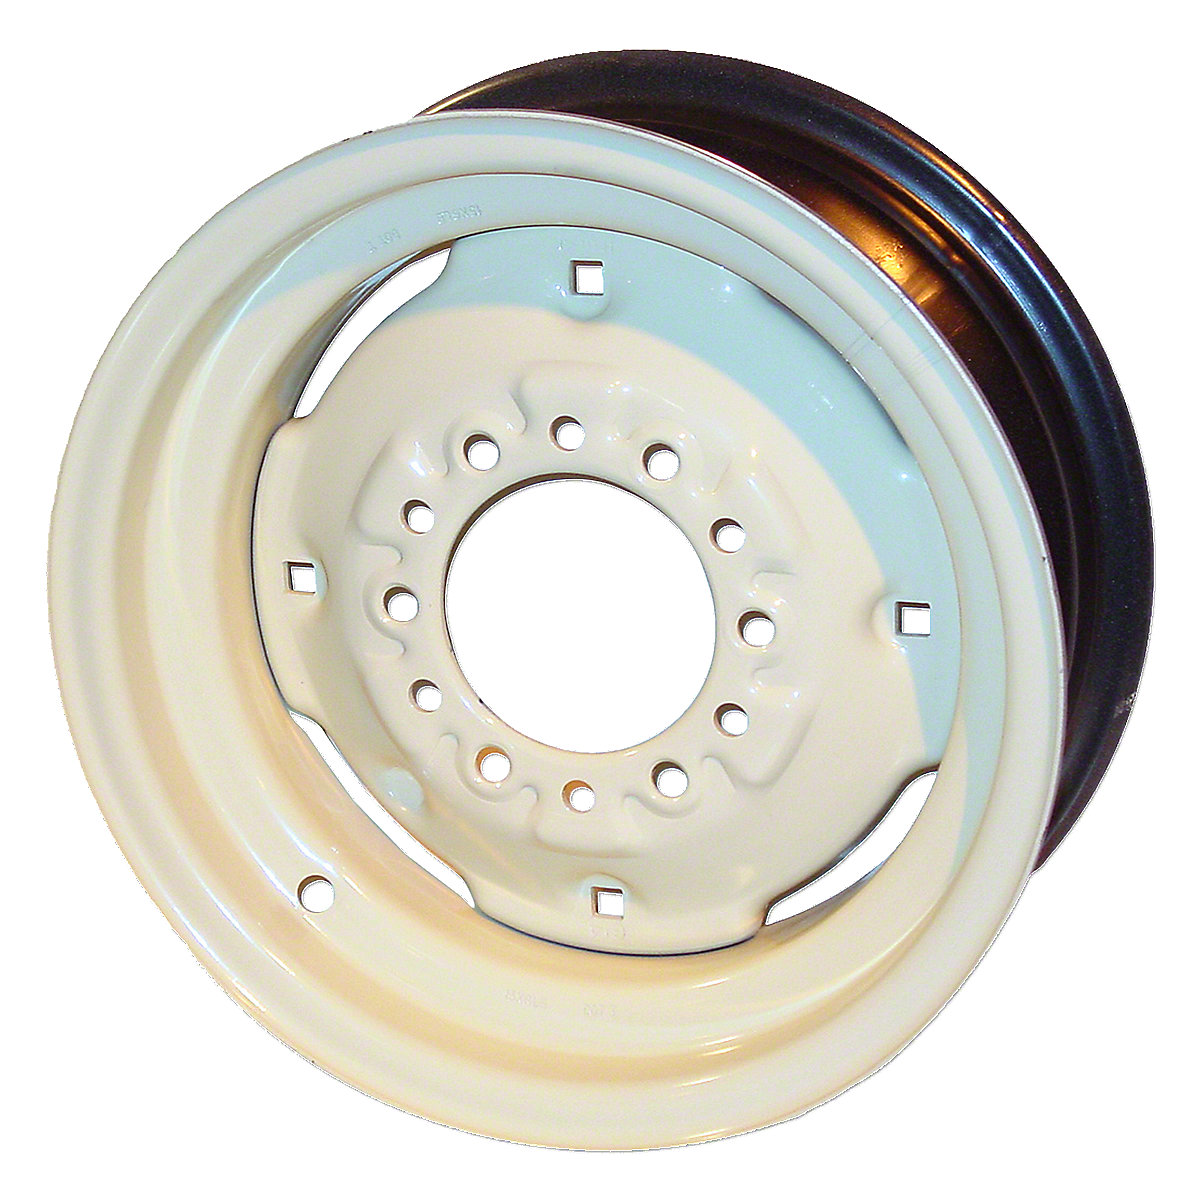 6X15 6 Lug Front Wheel For Oliver: 1655, 1750, 1755, 1800, 1850, 1855. 4.625 Pilot Hole, 4-3/4 Back Spacing, 4 Wheel Weight Holes.